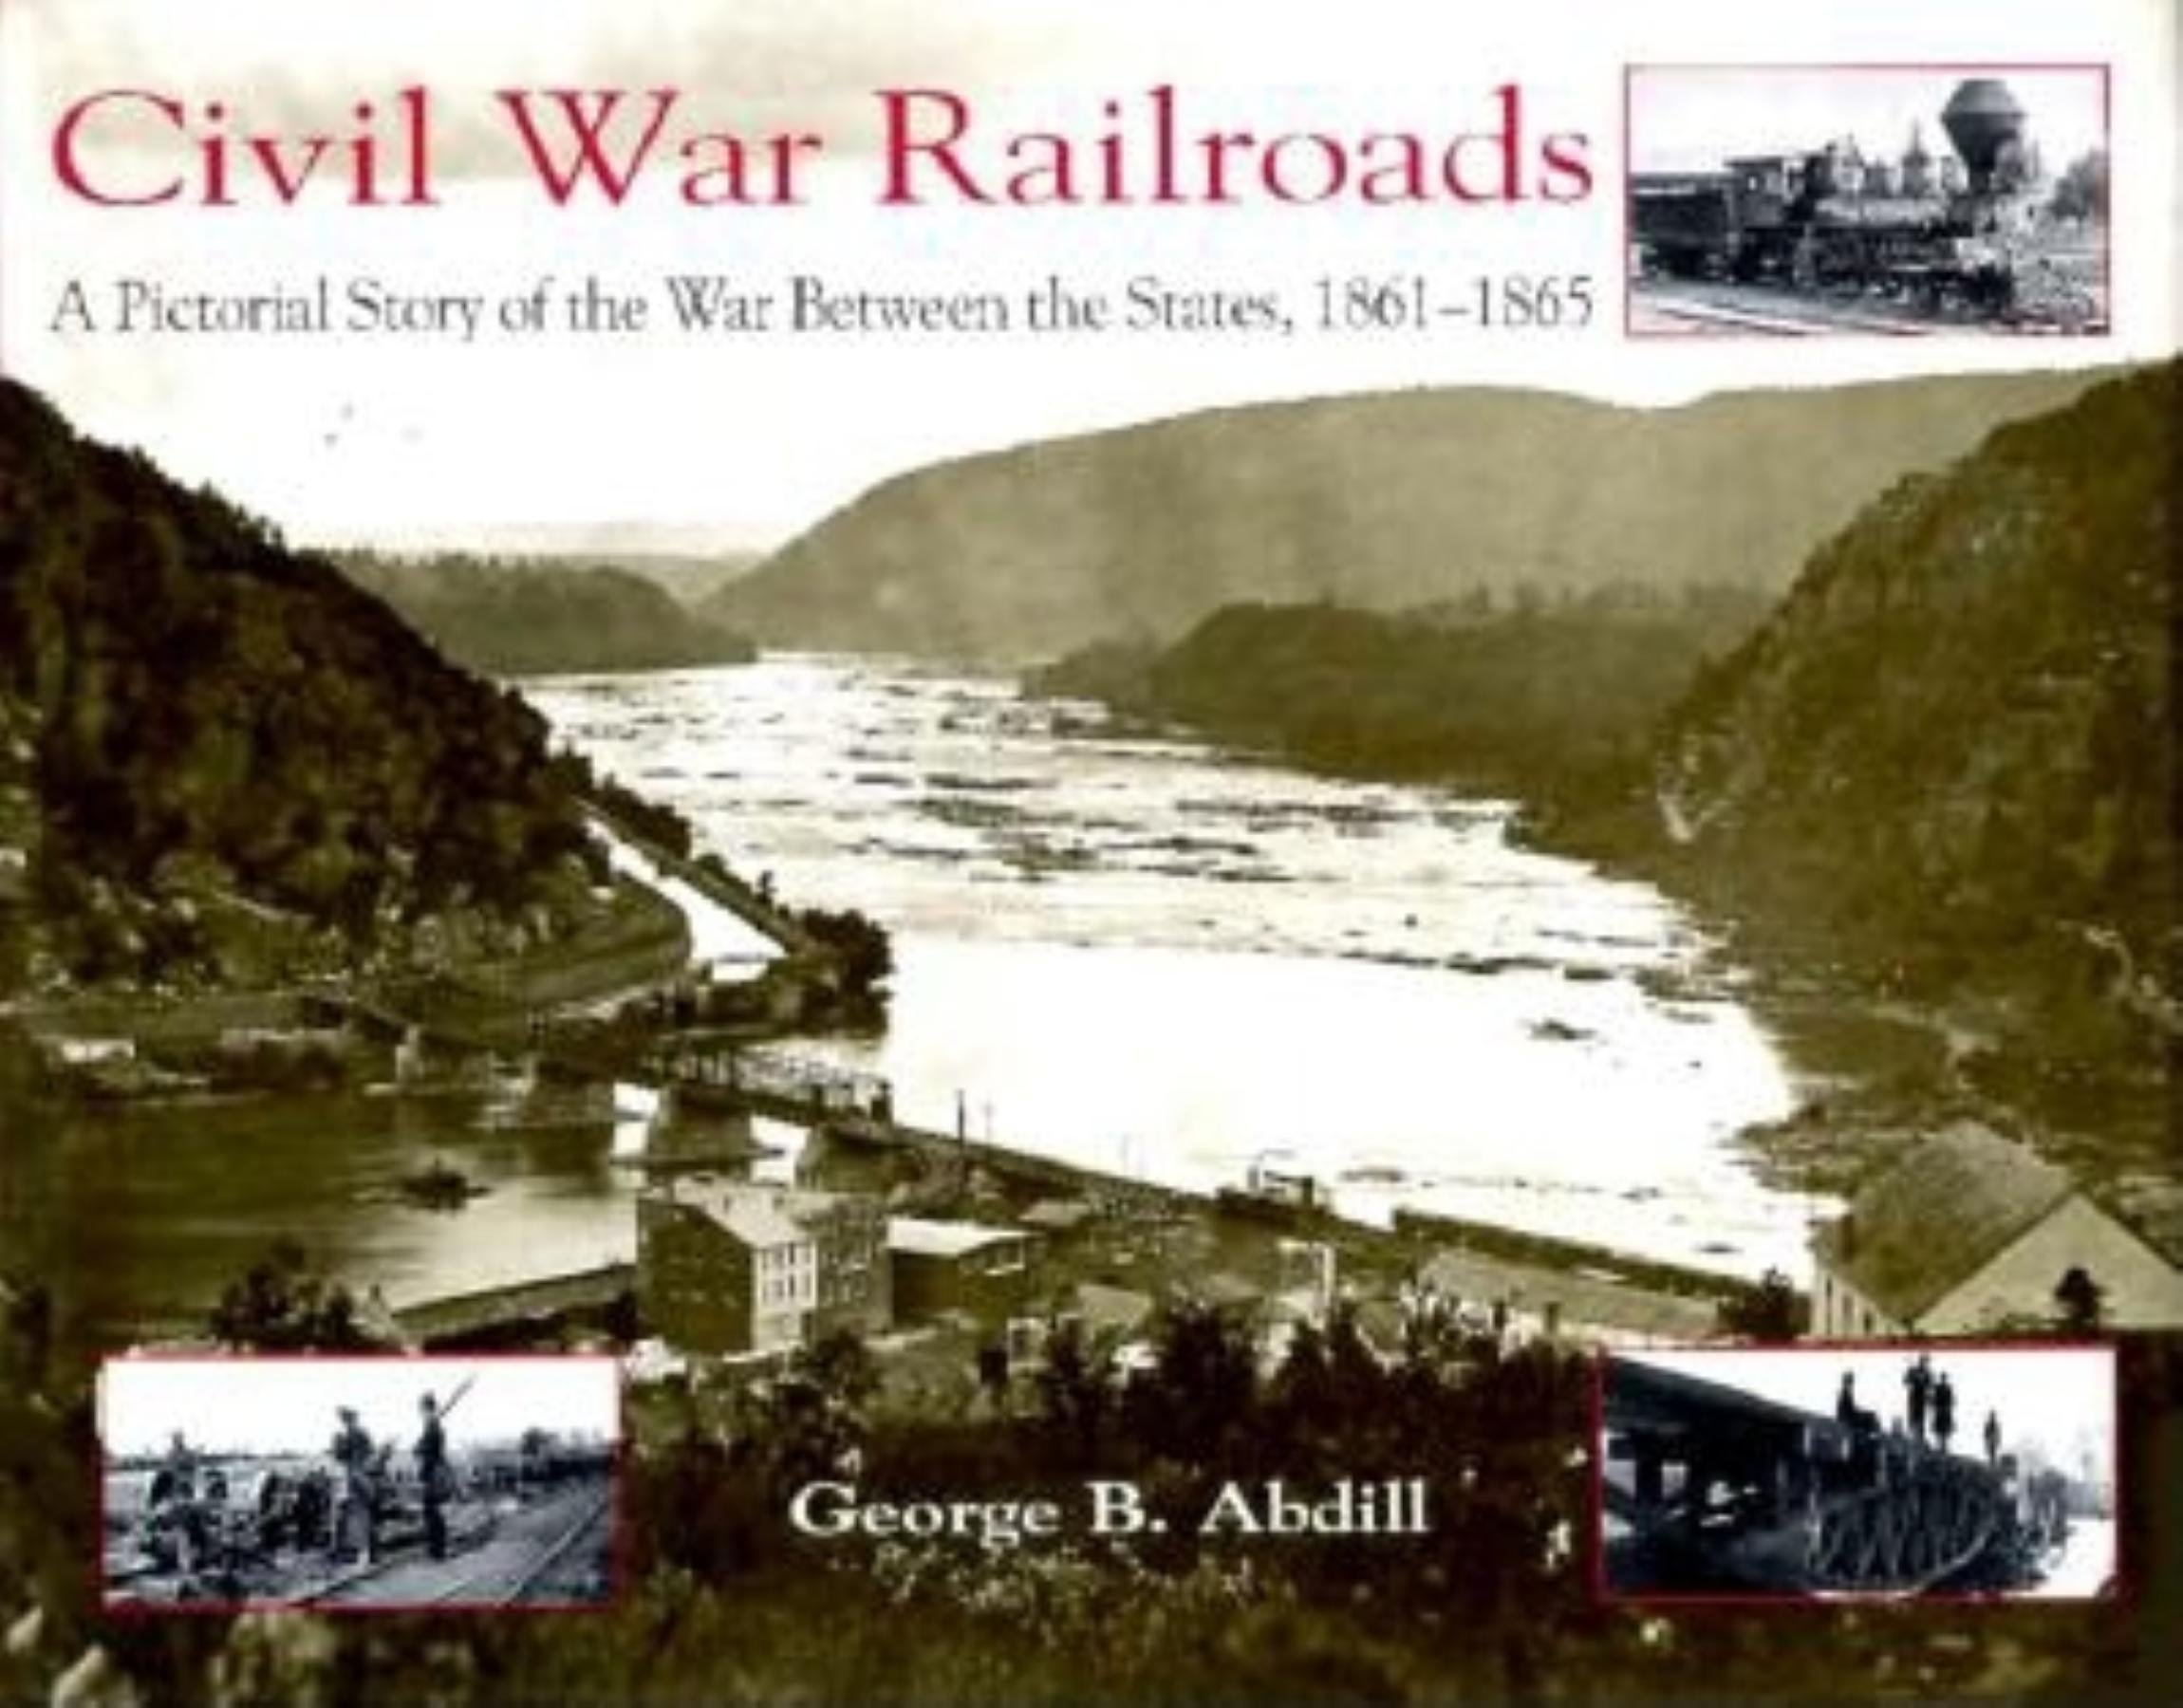 Civil War Railroads: A Pictorial Story of the War between the States, 1861-1865